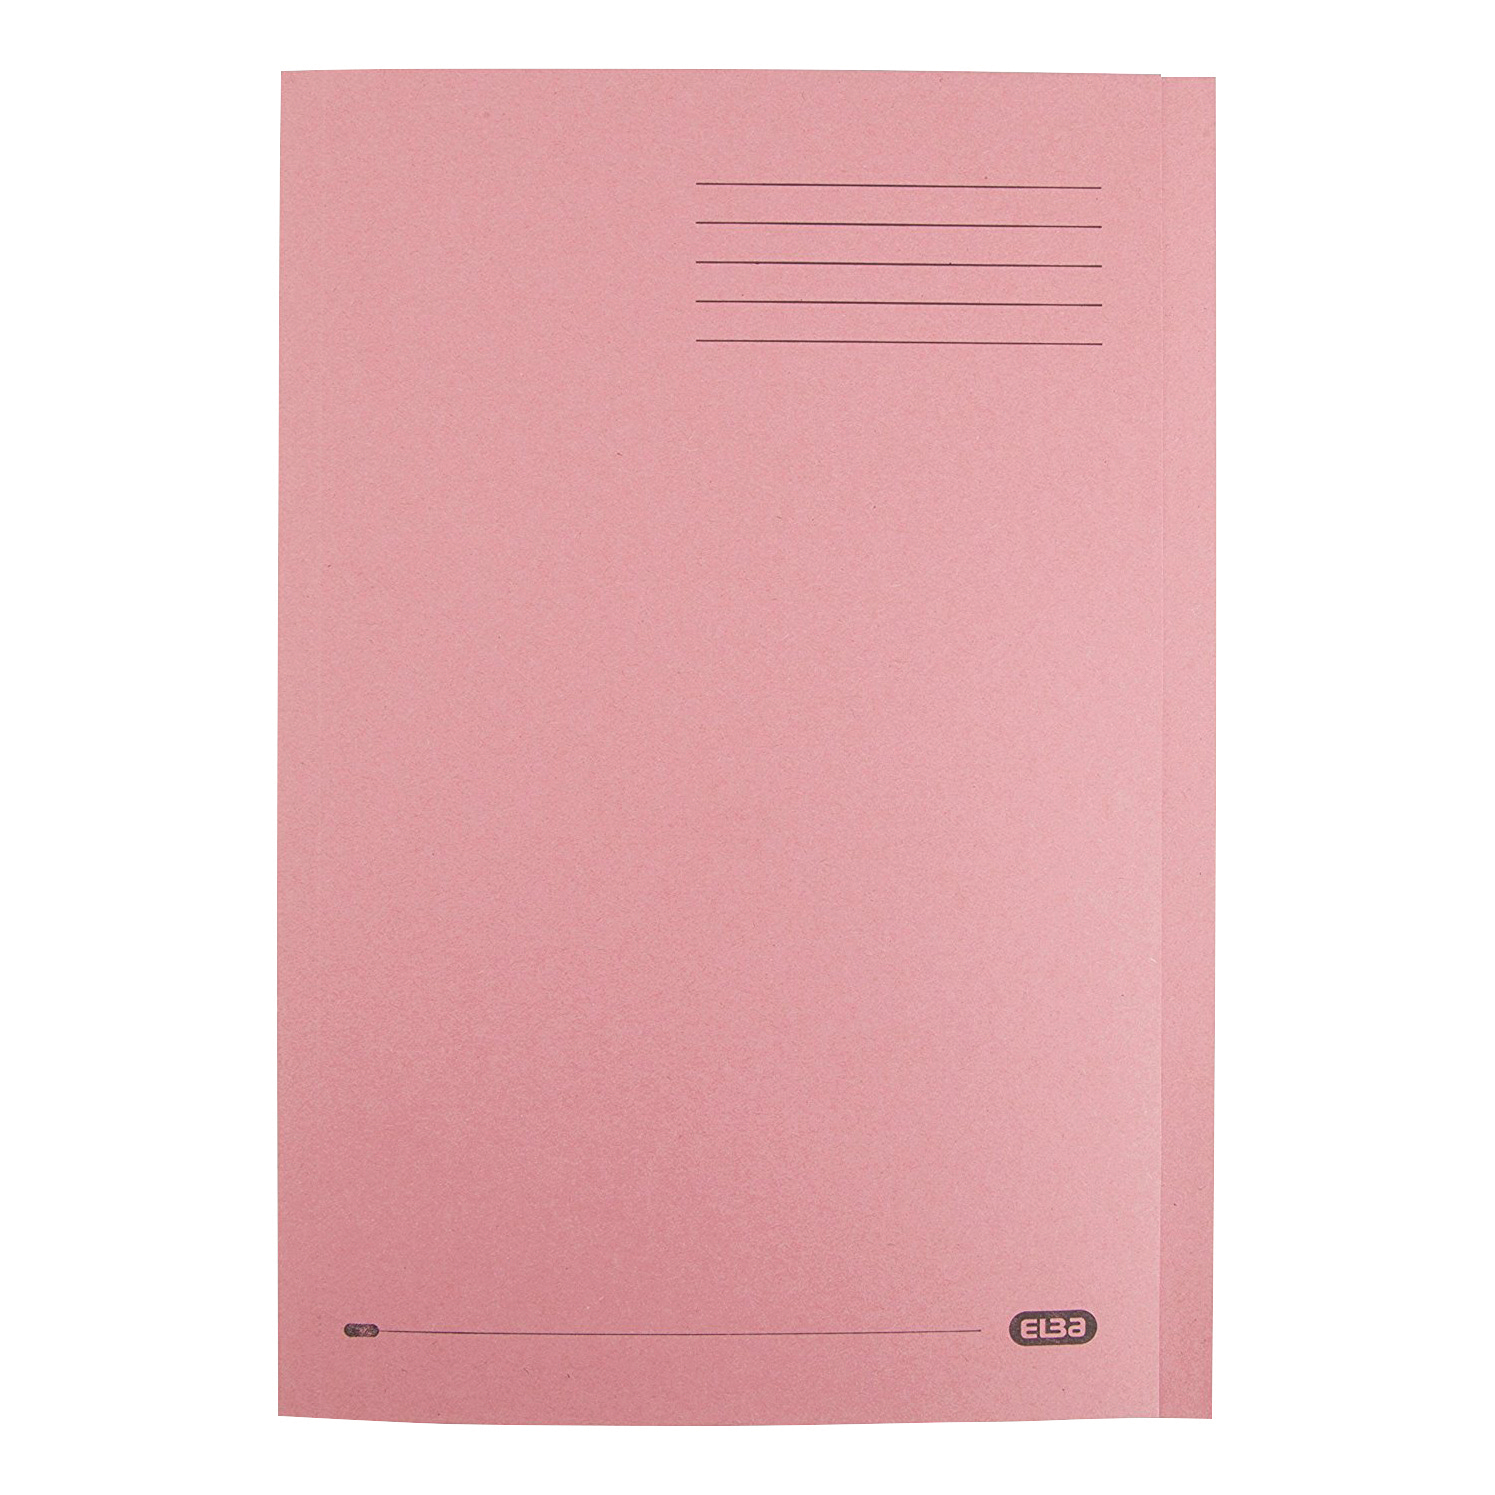 Elba Foolscap Square Cut Folder Recycled Mediumweigh 285gsm Manilla Pink Ref 100090221 Pack 100